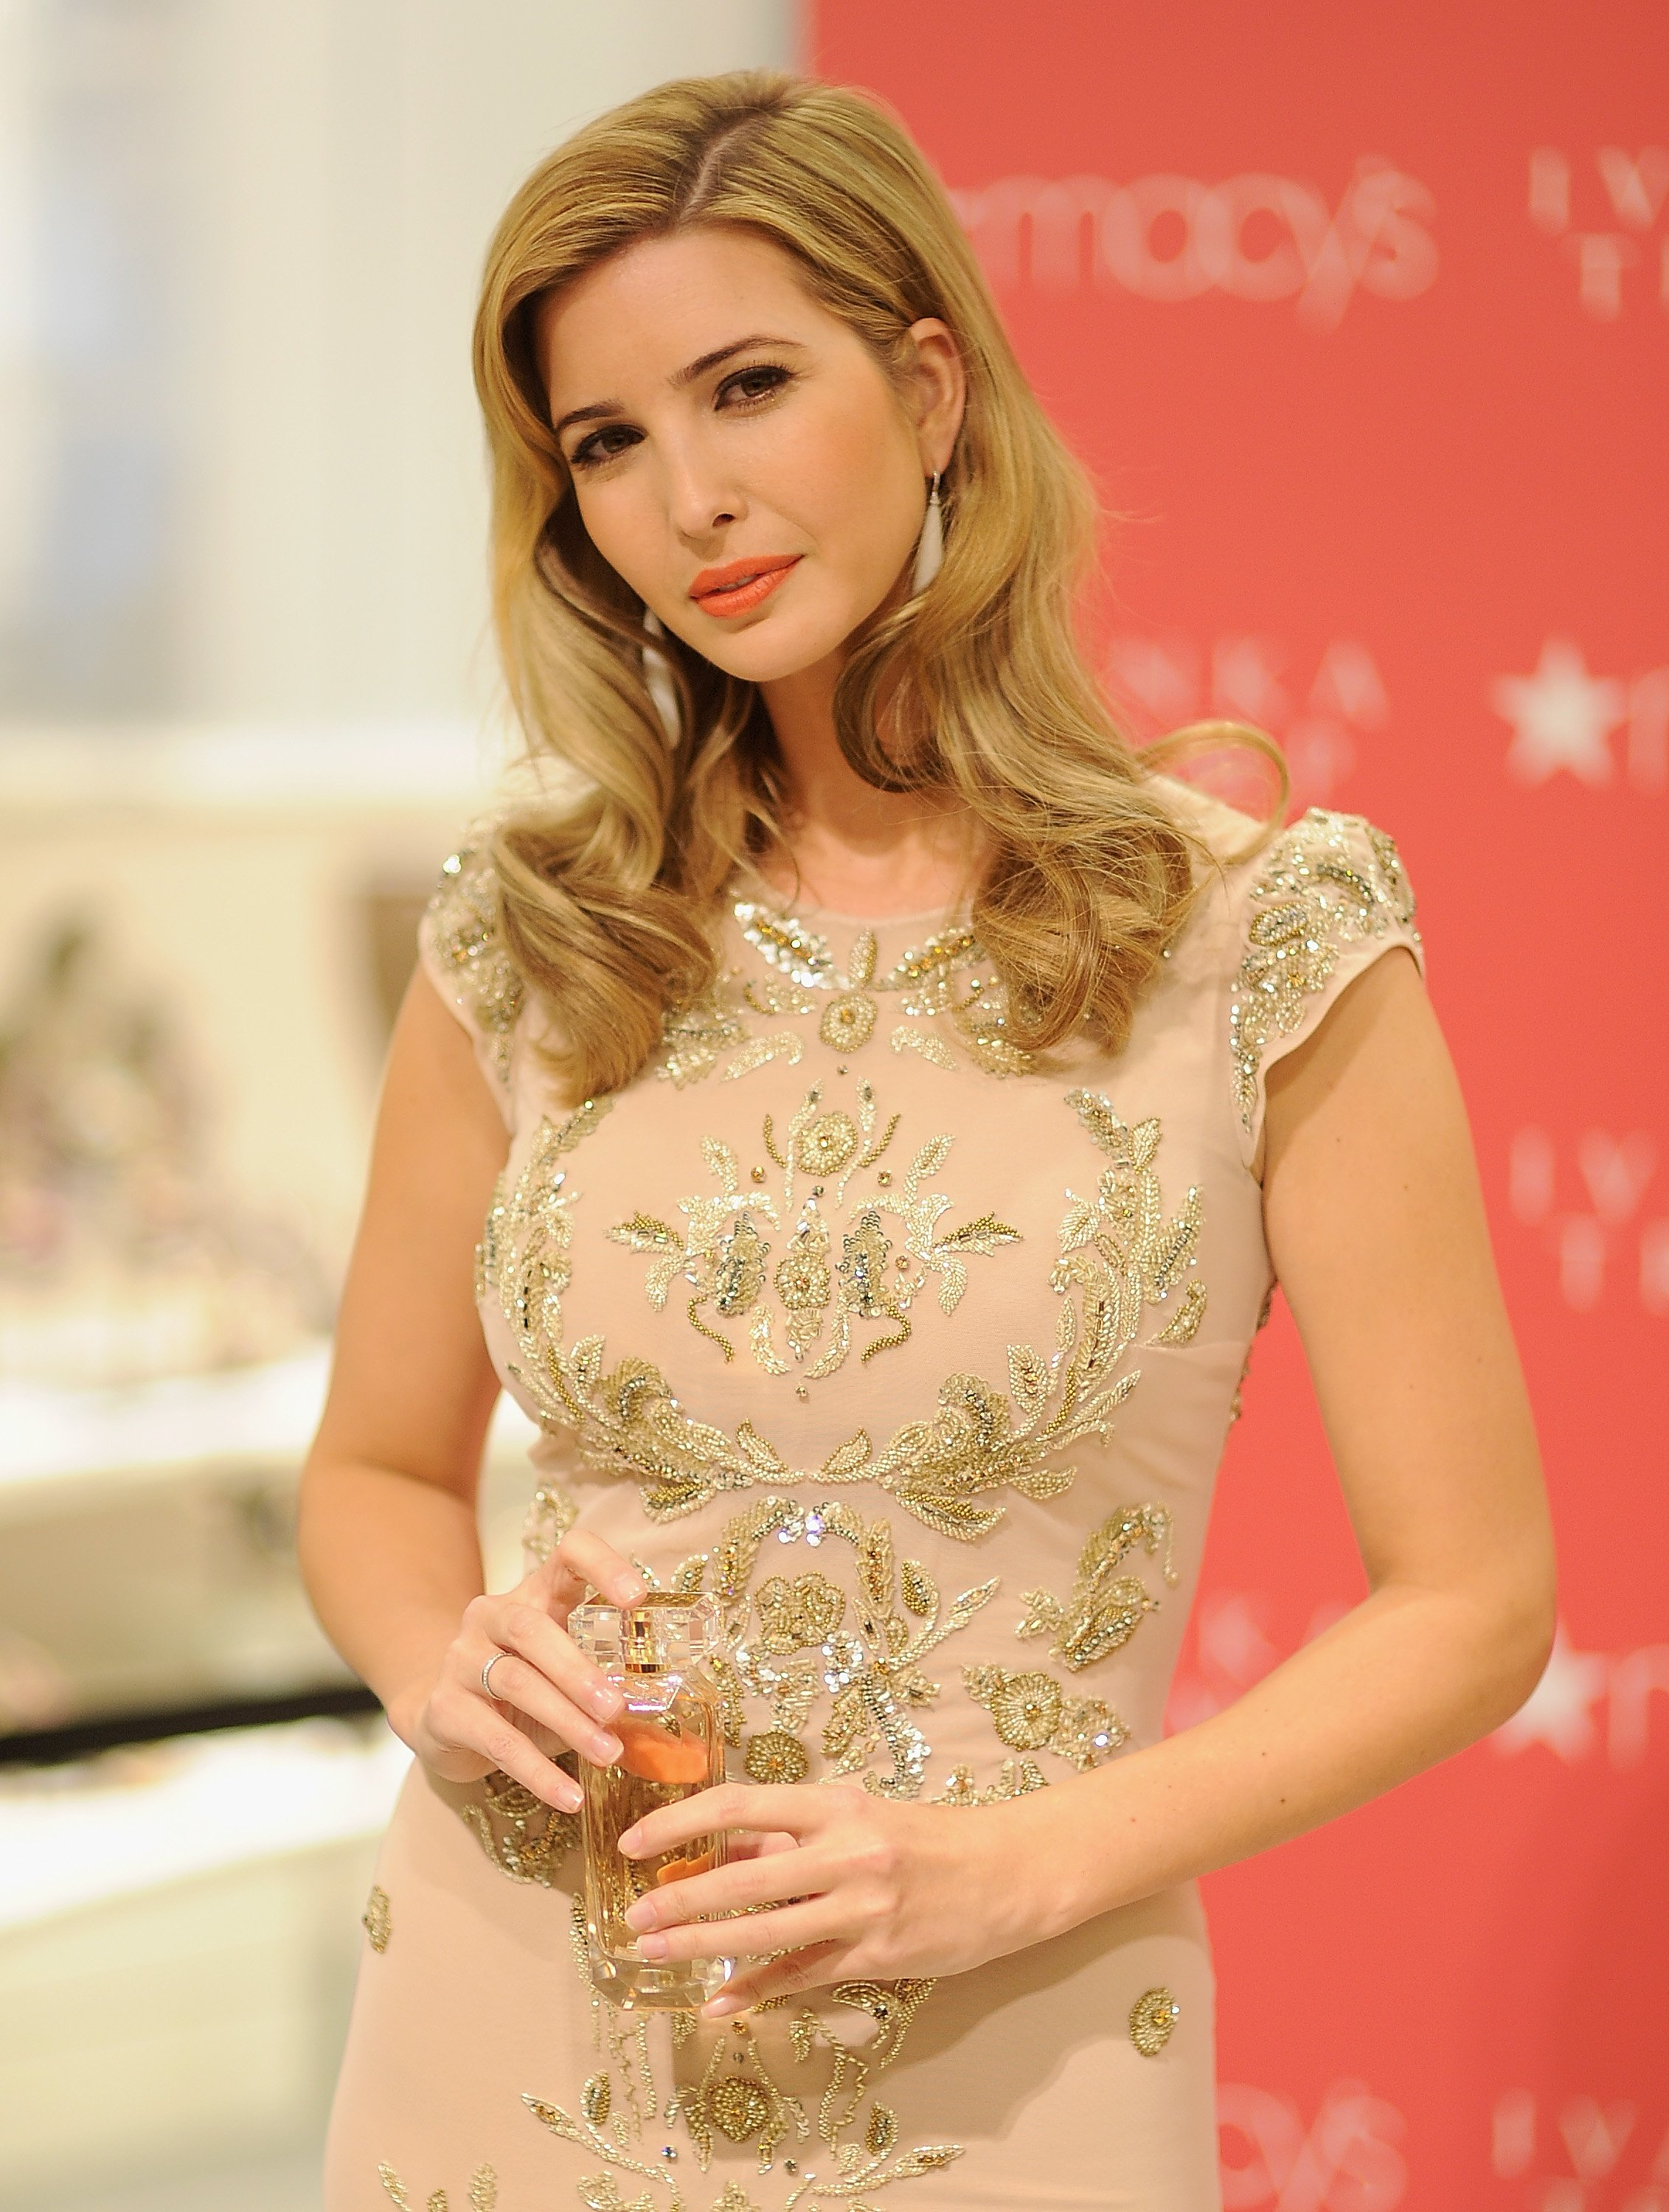 Ivanka Trump attends Ivanka Trump Fragrance Launch at Macy's Herald Square on February 19, 2013 | Photo: Getty Images